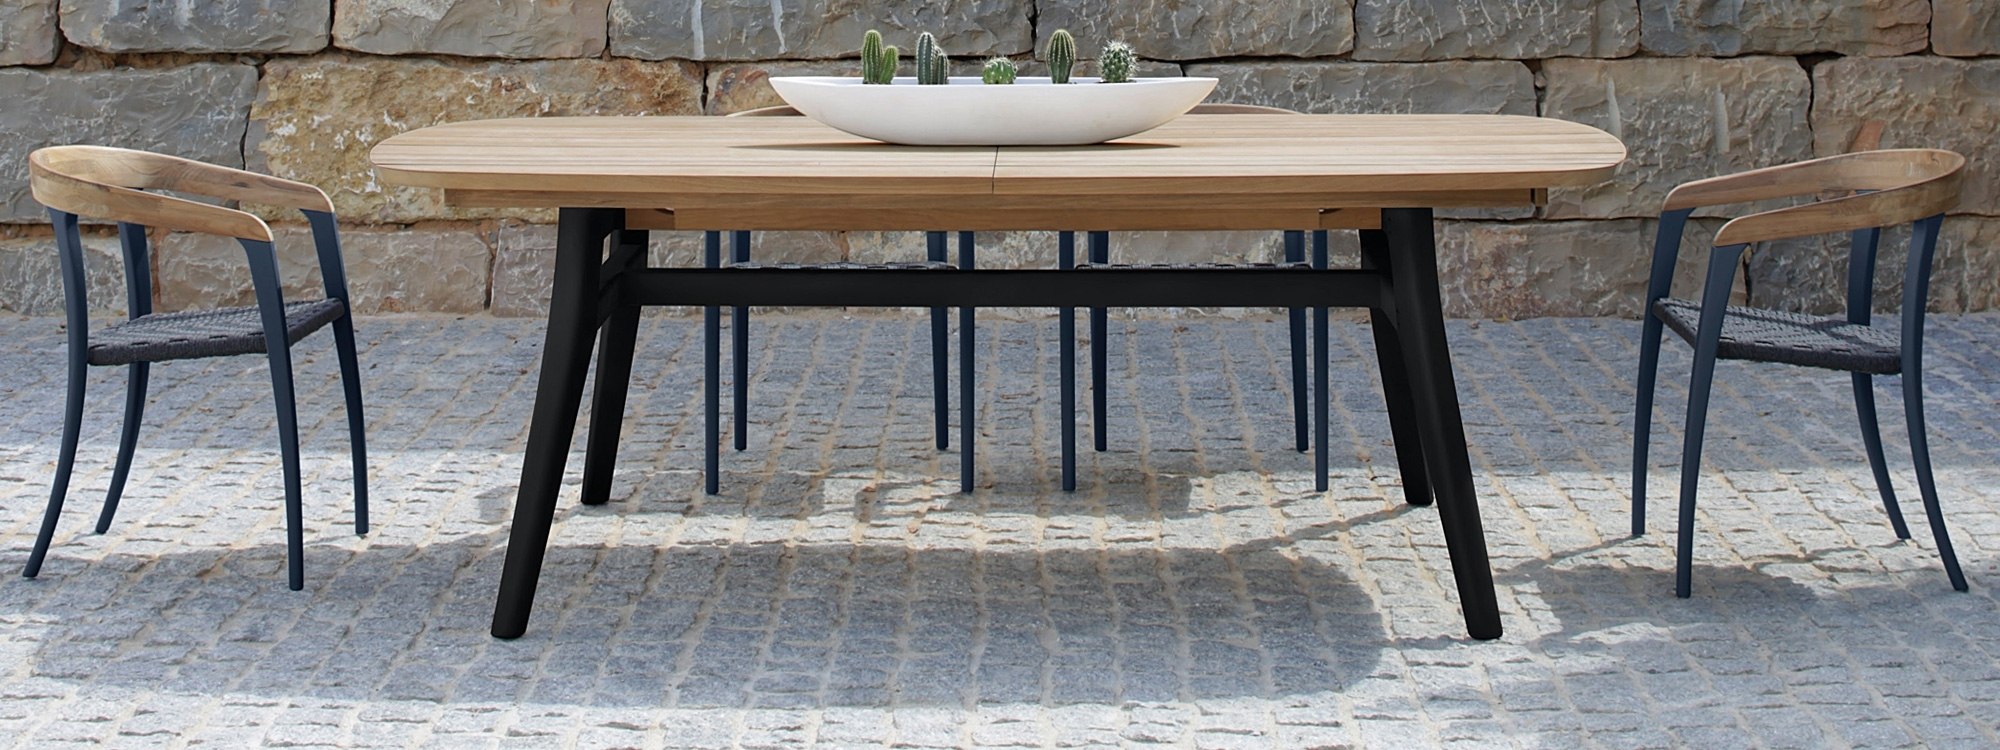 Famous Luxury Outdoor Dining Tables & Chairs. Modern Design + Premium Quality (View 7 of 25)